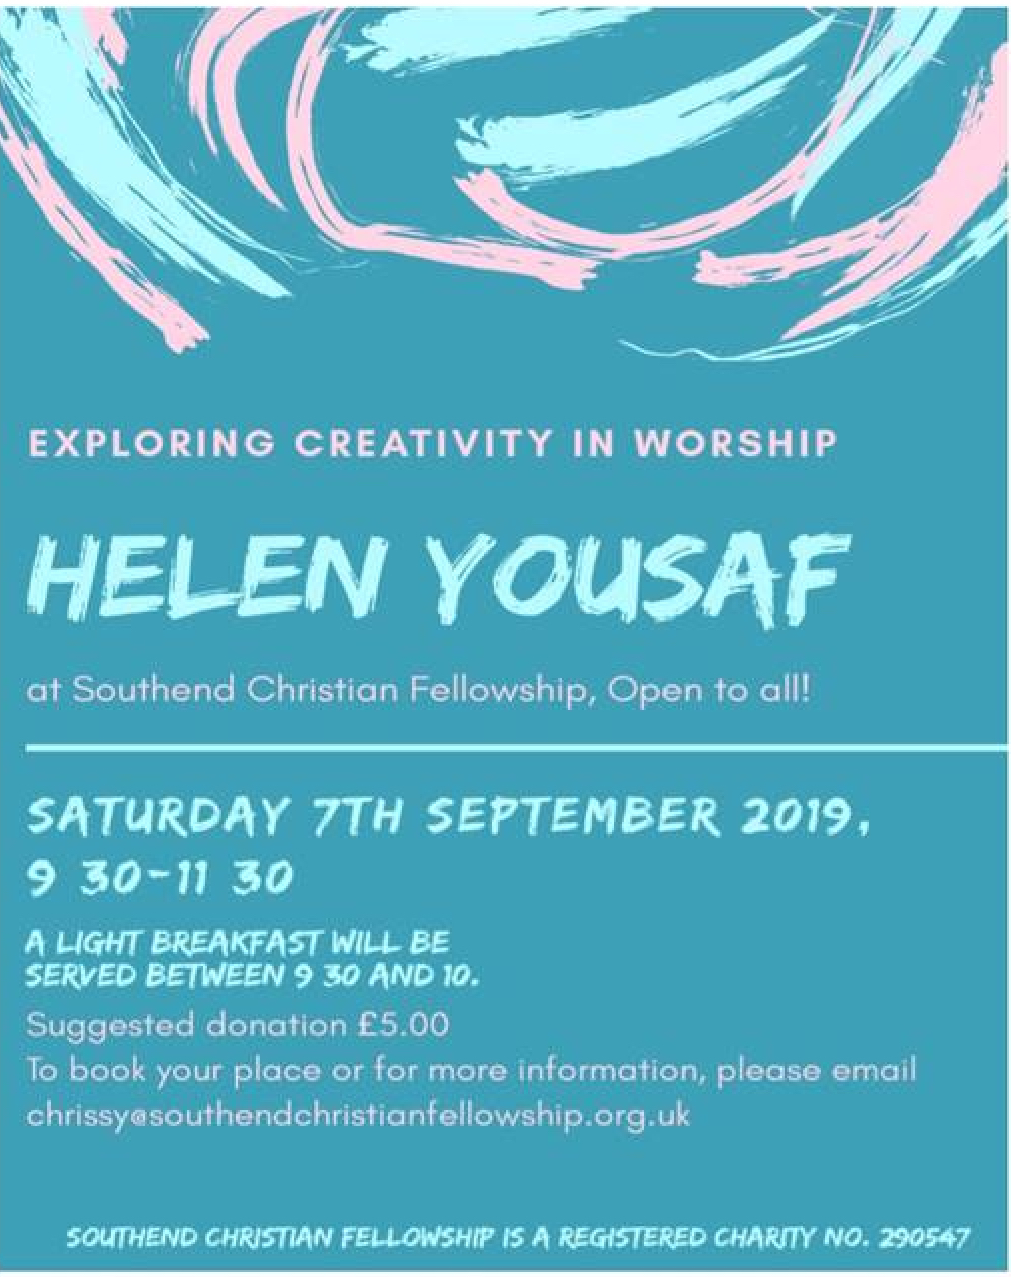 Exploring Creativity in Worship with Helen Yousaf